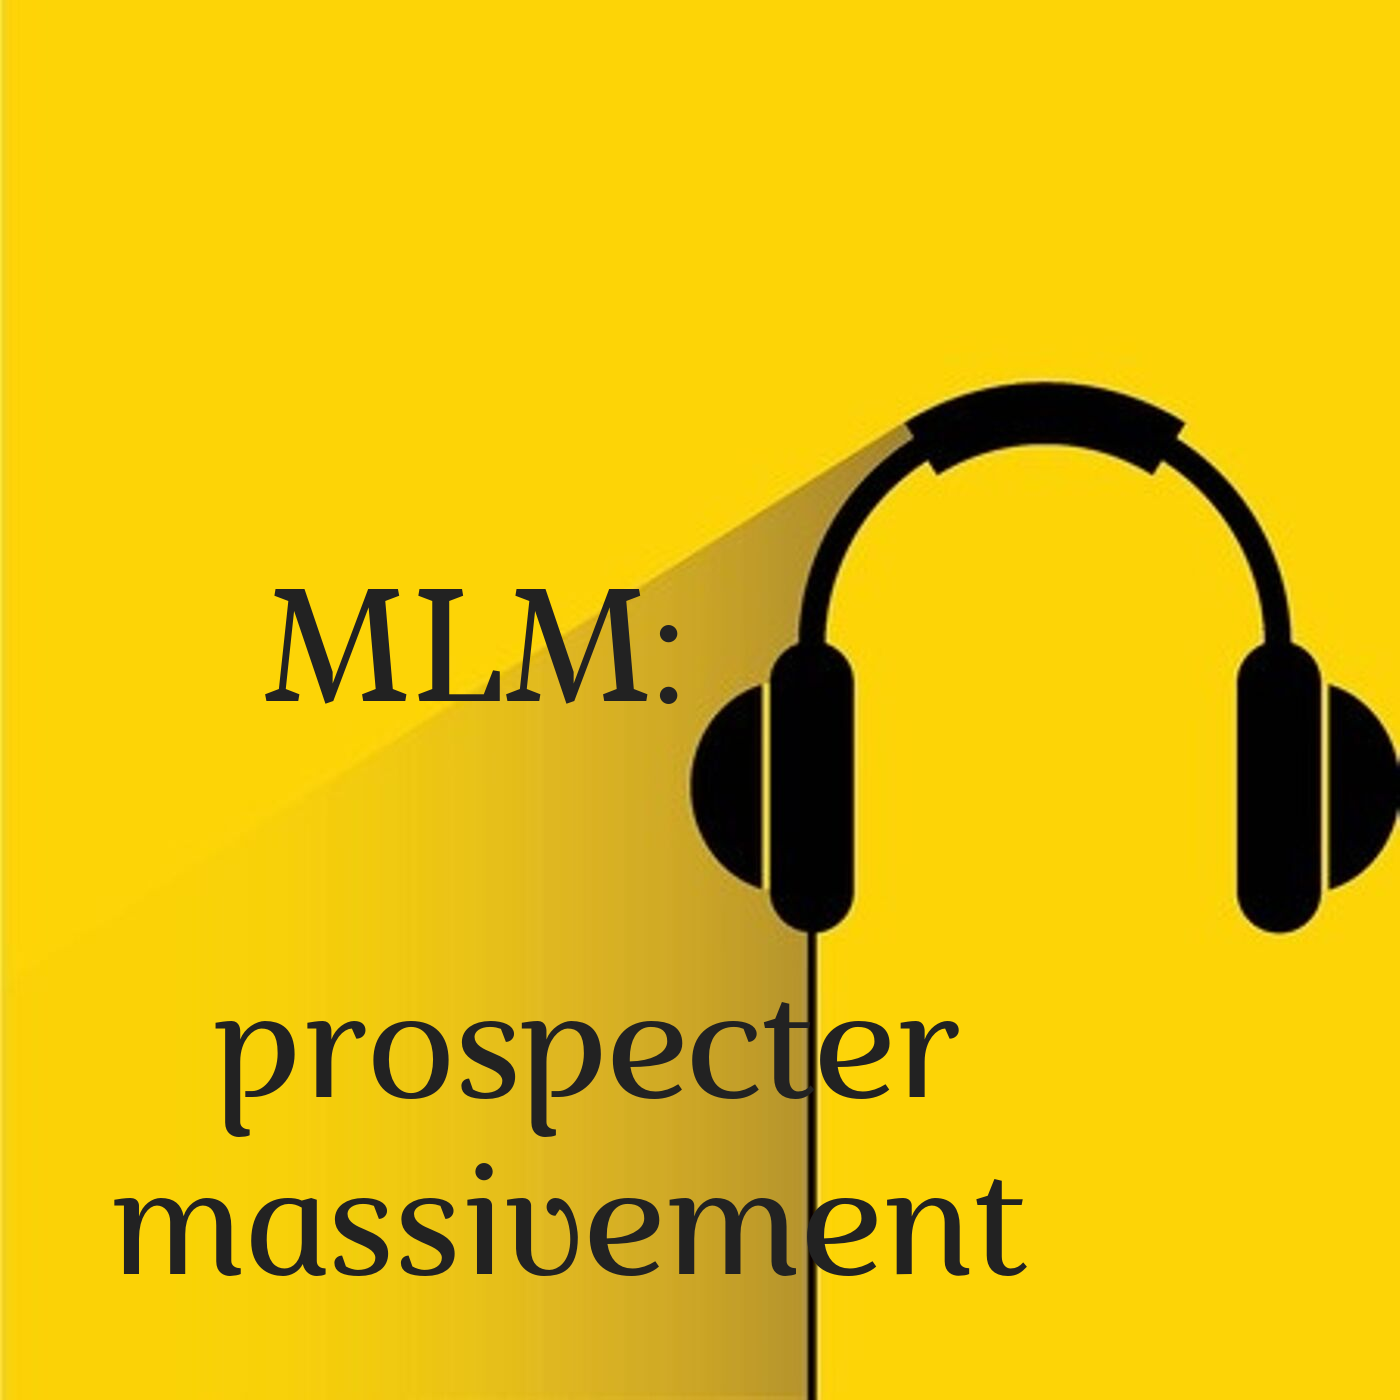 Comment prospecter massivement, en MLM